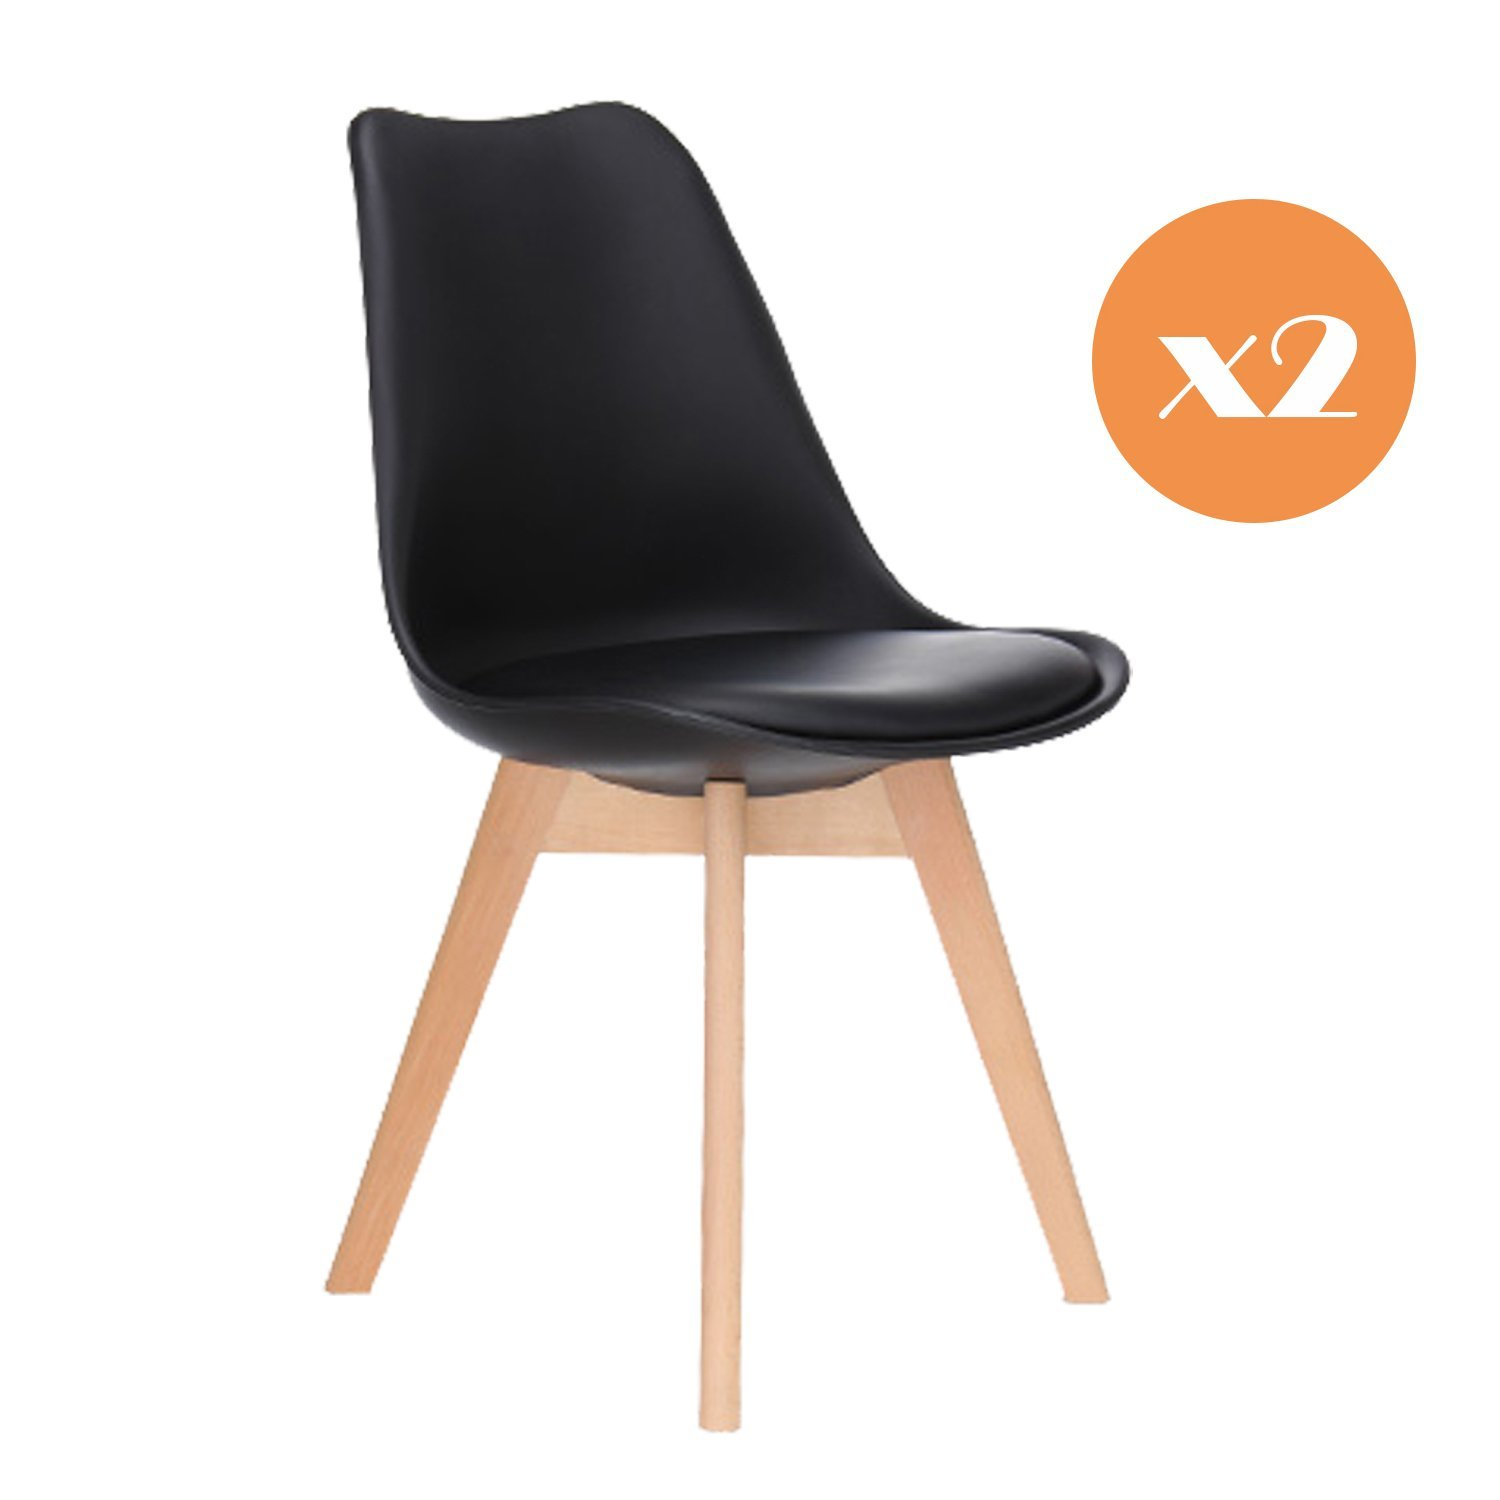 Mmilo Tulip Dining Chair fice chair with Solid wood legs PU